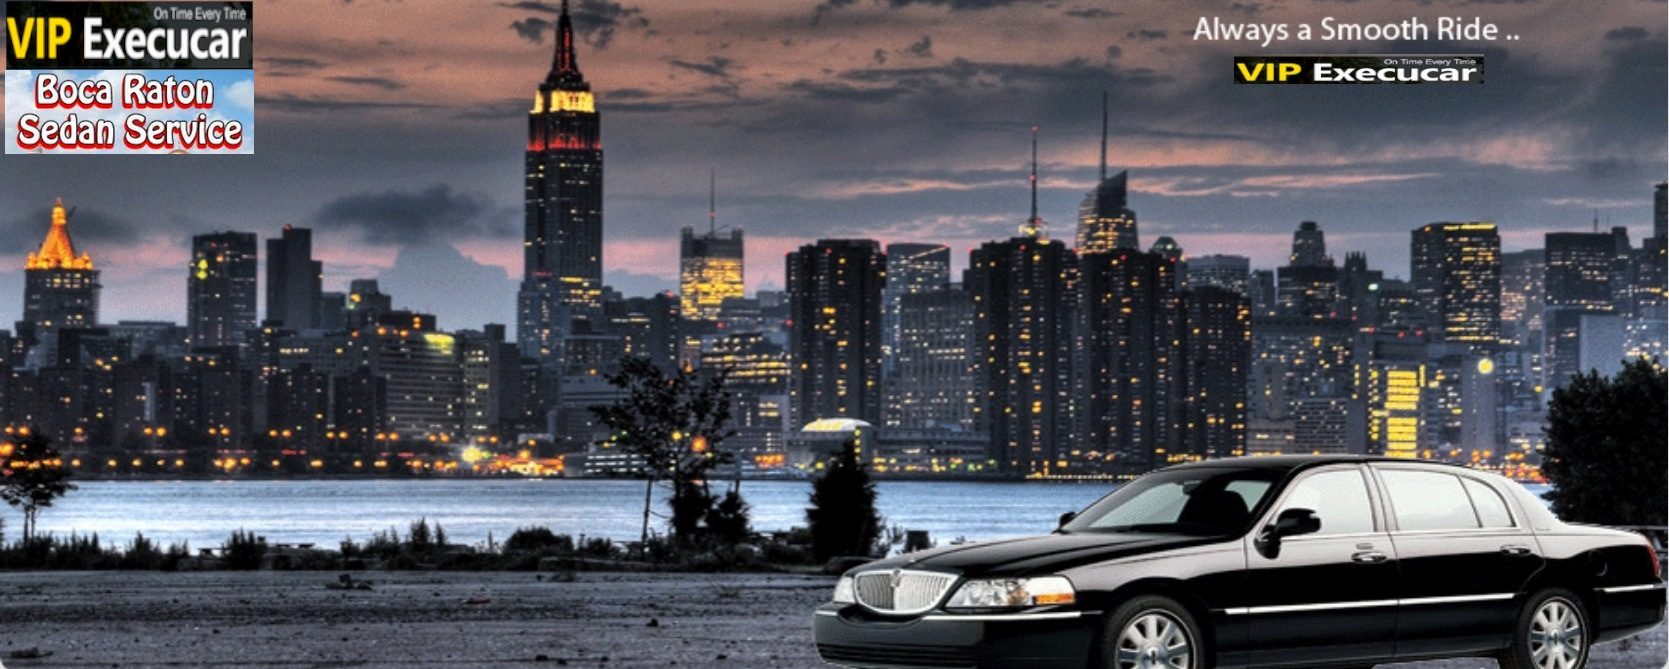 Vip Execucar chauffeured luxury limousine and private aviation services.